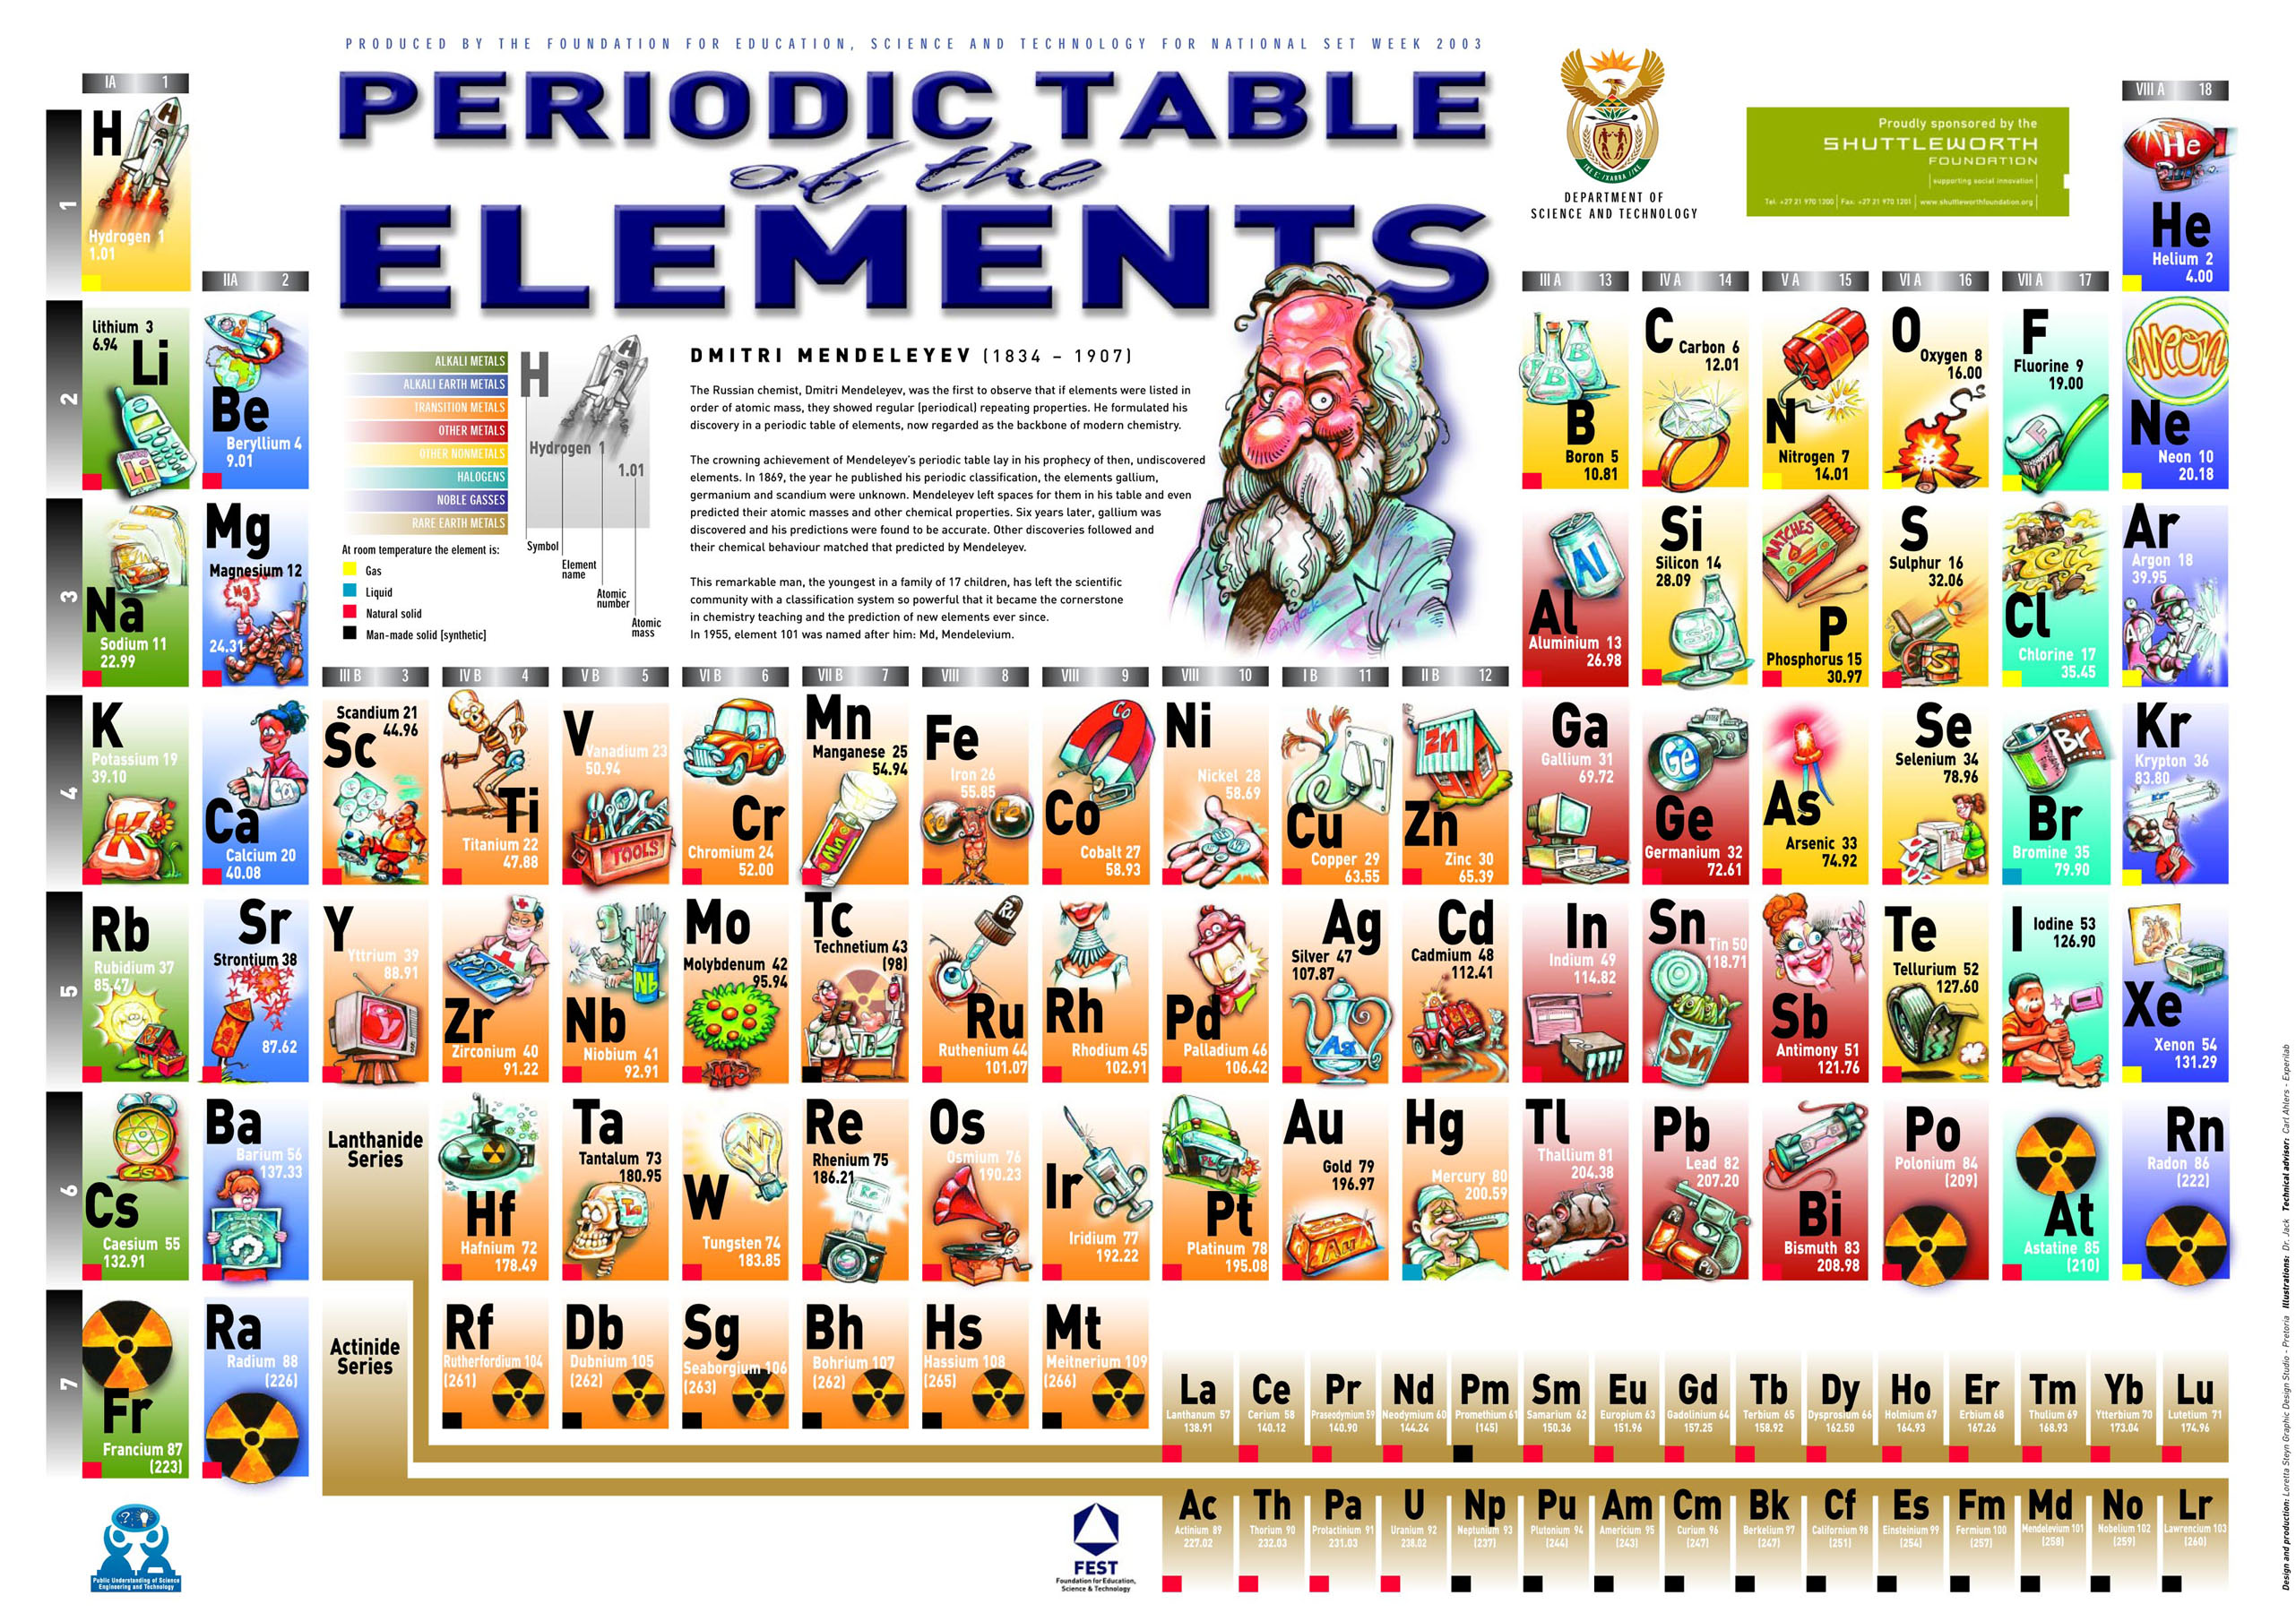 Atoms And Elements The periodic table of elements